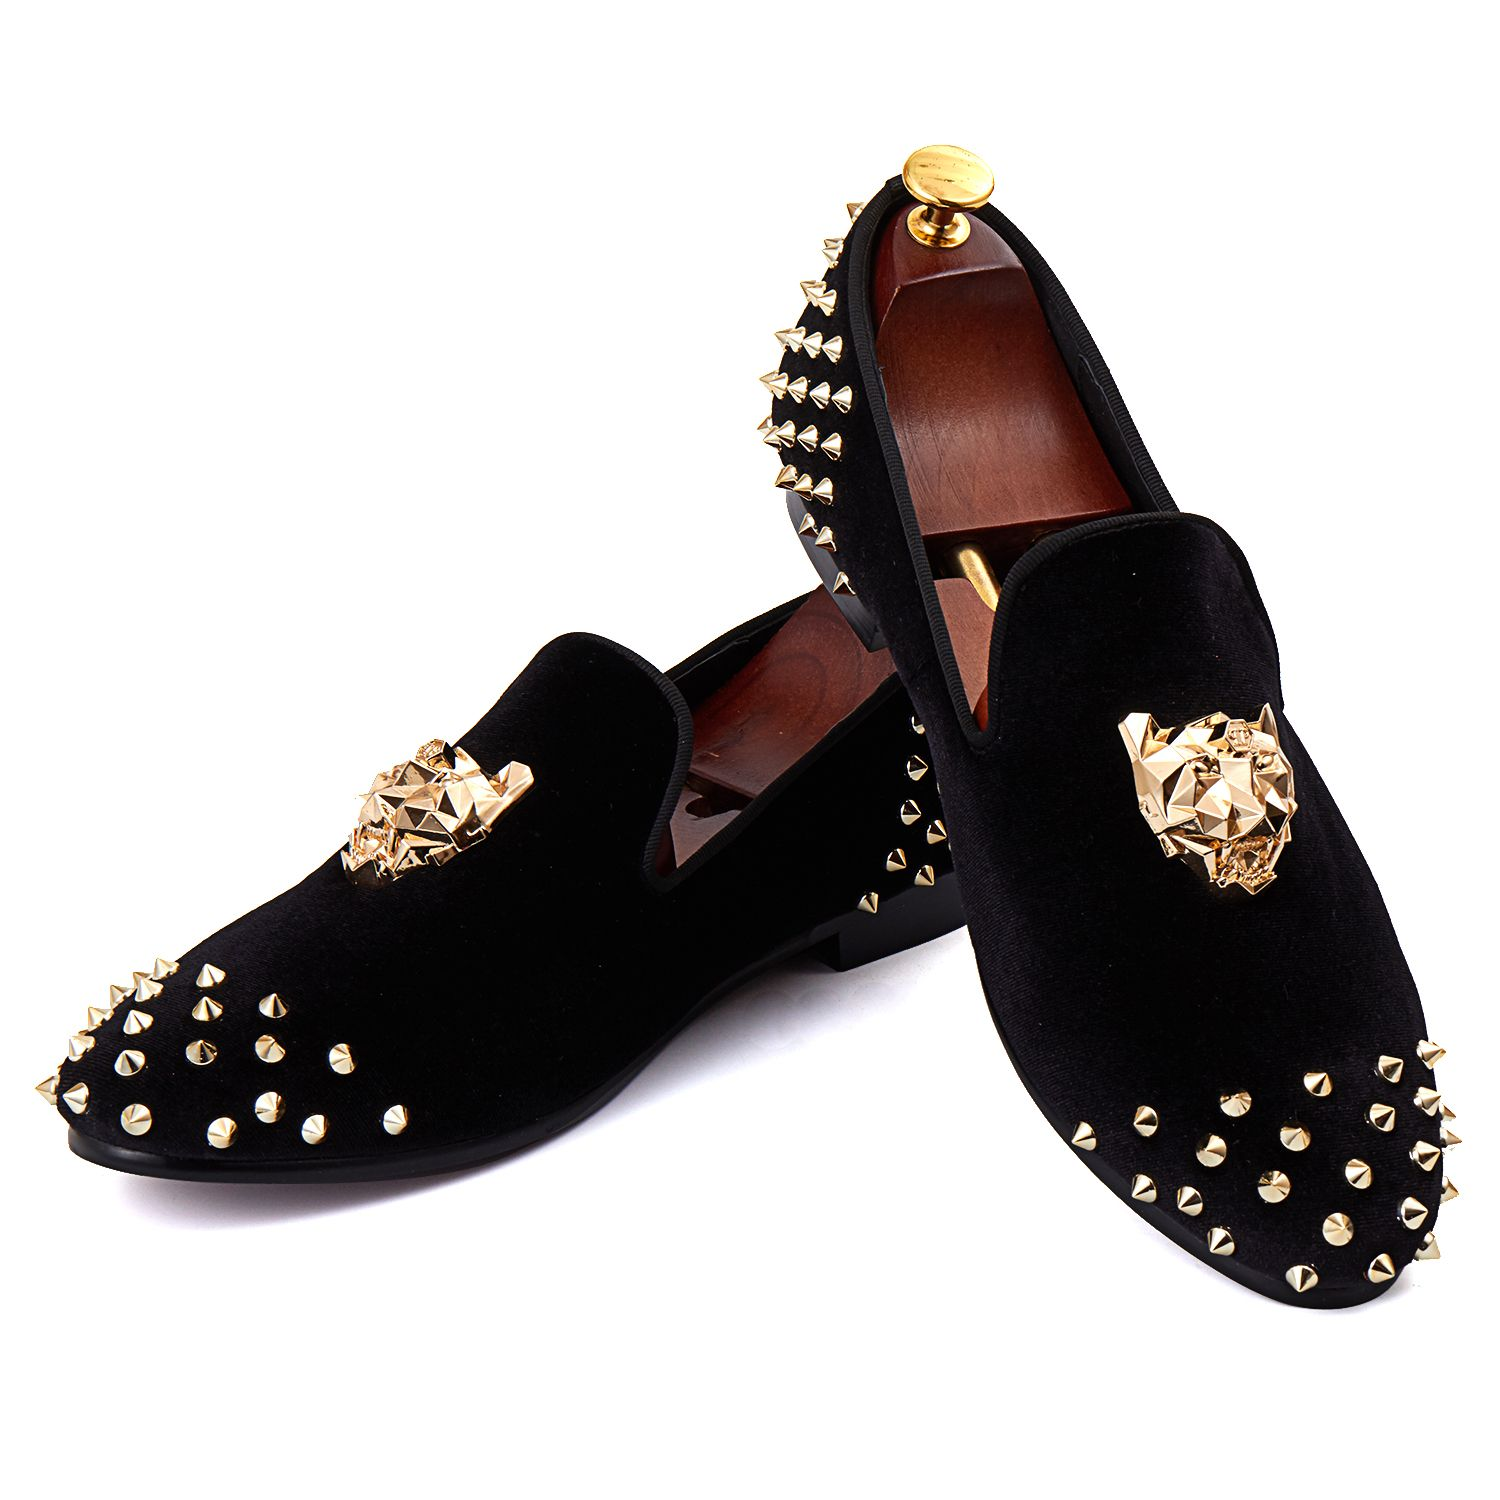 Branded Flat Shoes Rivets Black Men Velvet Loafers Animal Buckle Dress Shoes With Spikes Red Bottom Free Shipping Size 7-14